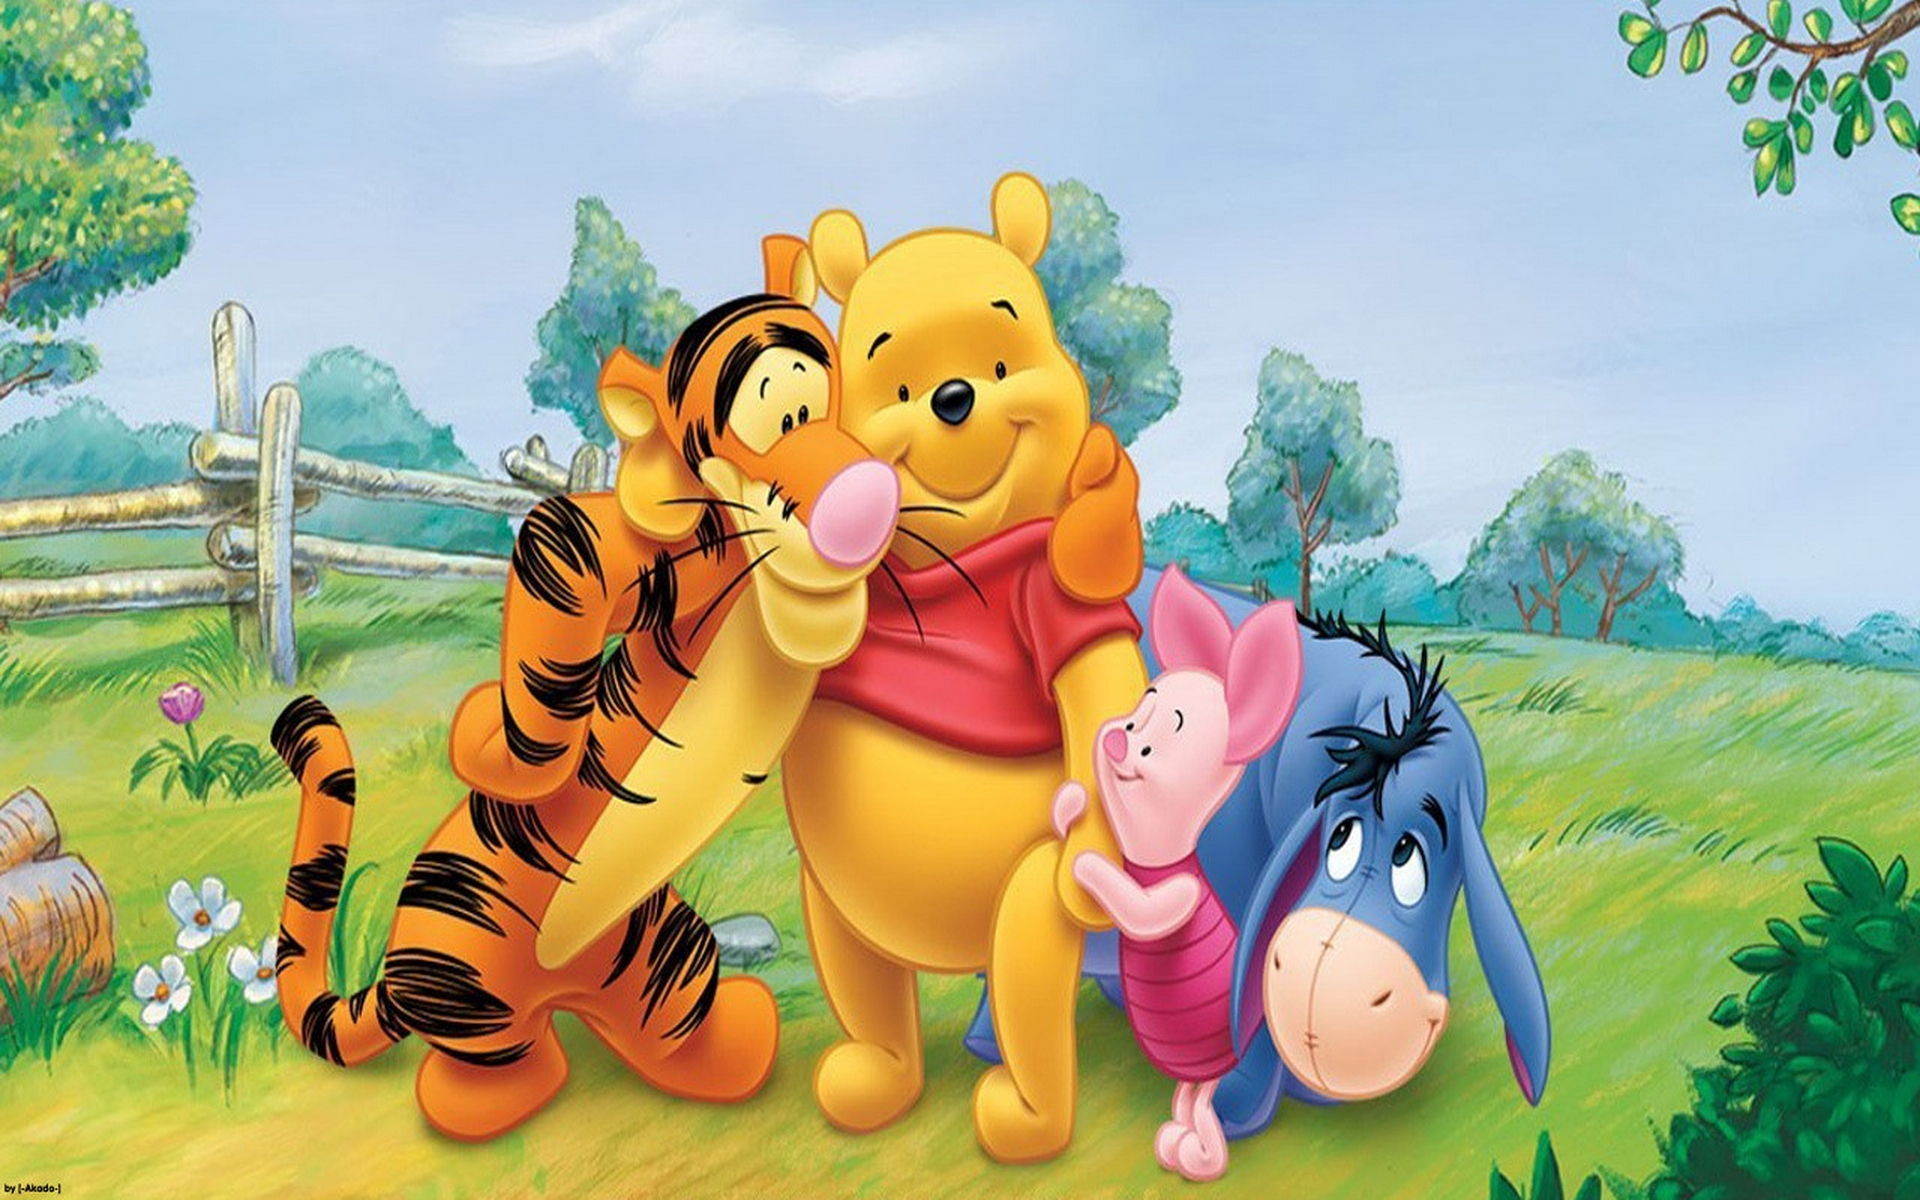 winnie the pooh full hd wallpaper and background image | 1920x1200